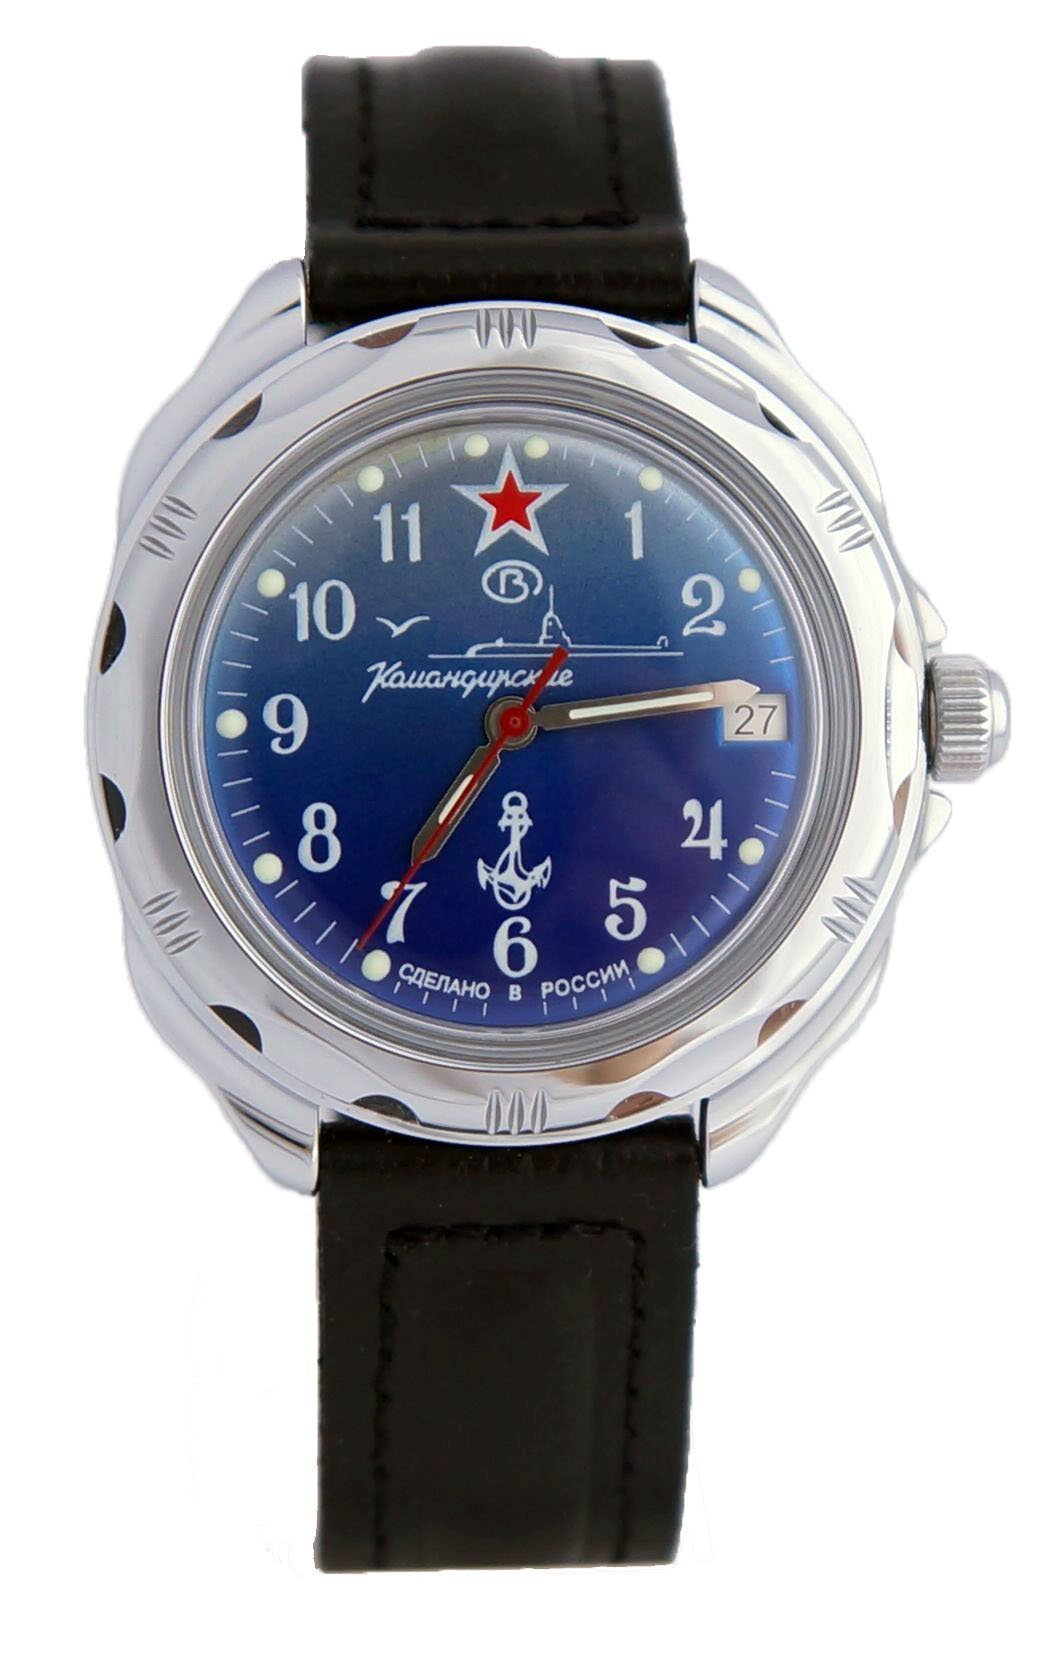 Vostok Komandirskie Military Russian Watch U-boot Commander Submarine Blue Ministry Case 2414 / 211289